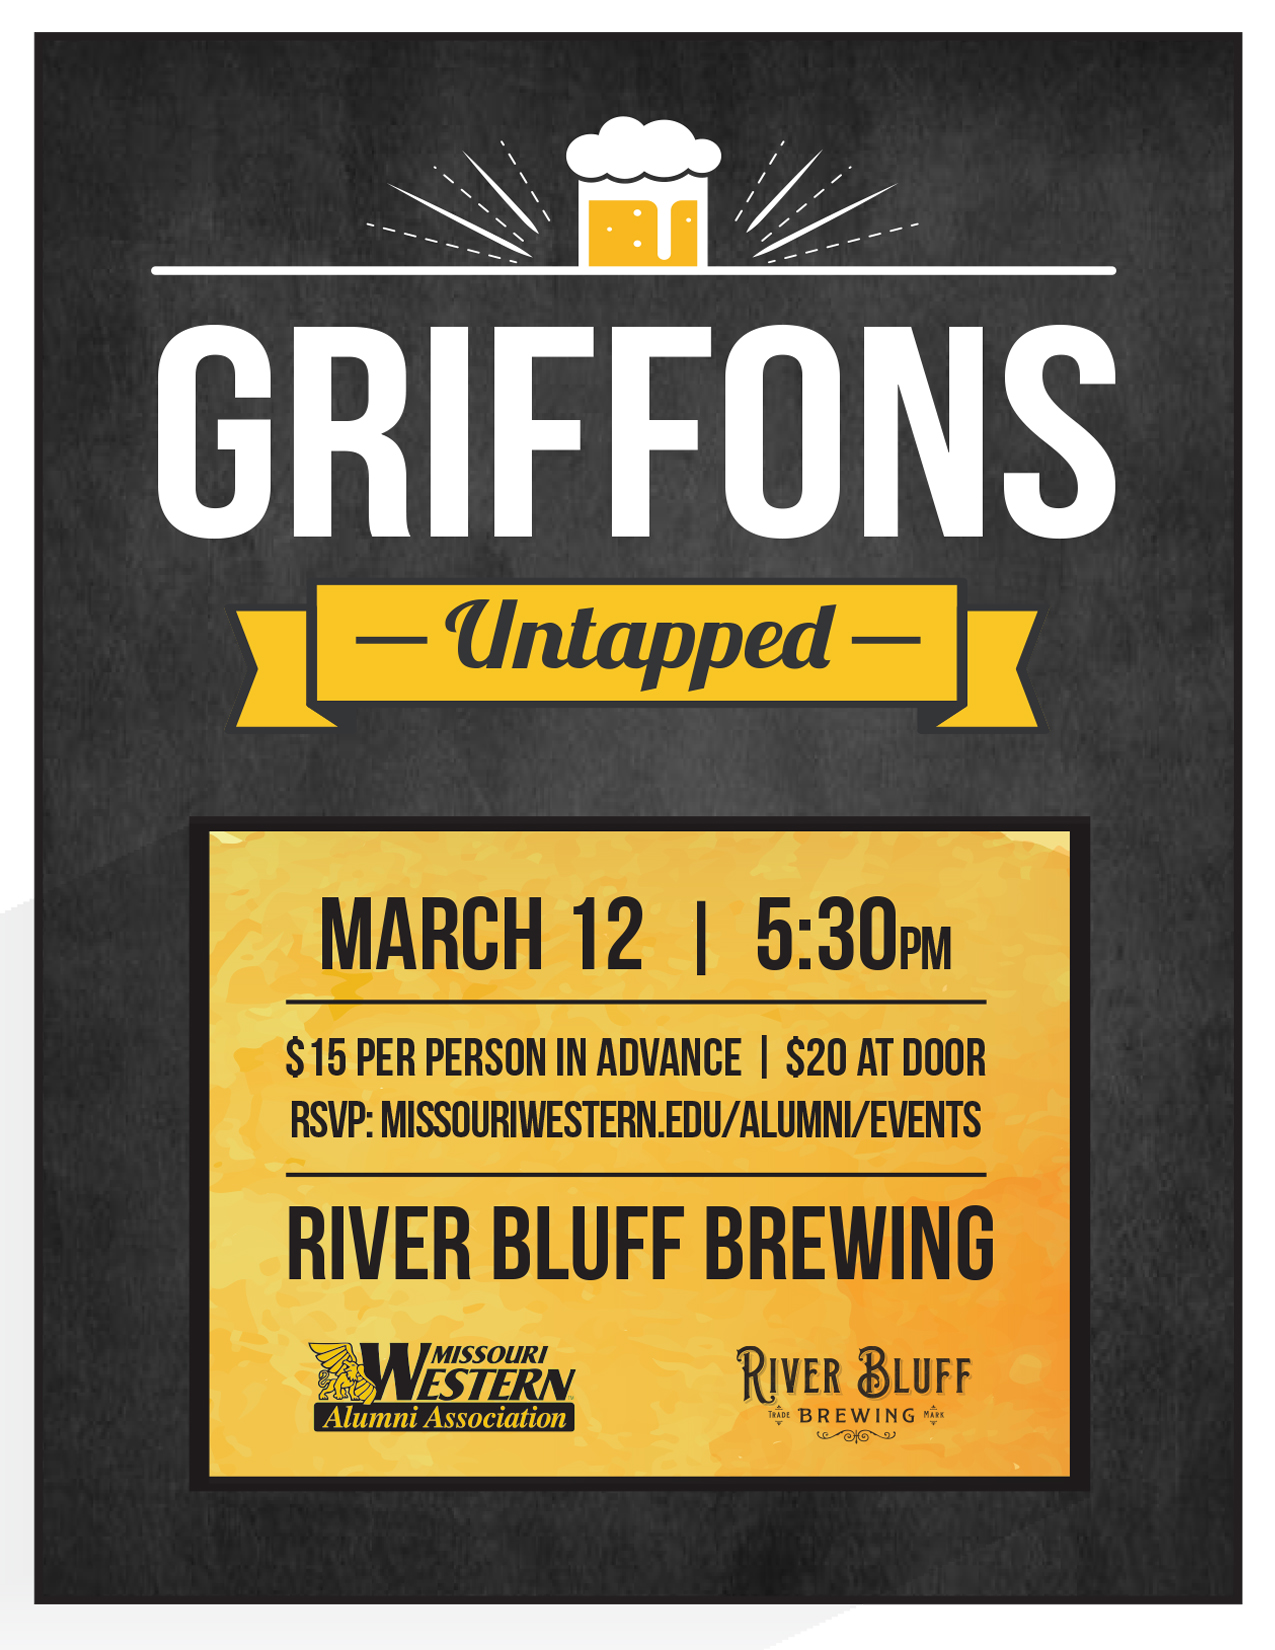 griffons untapped